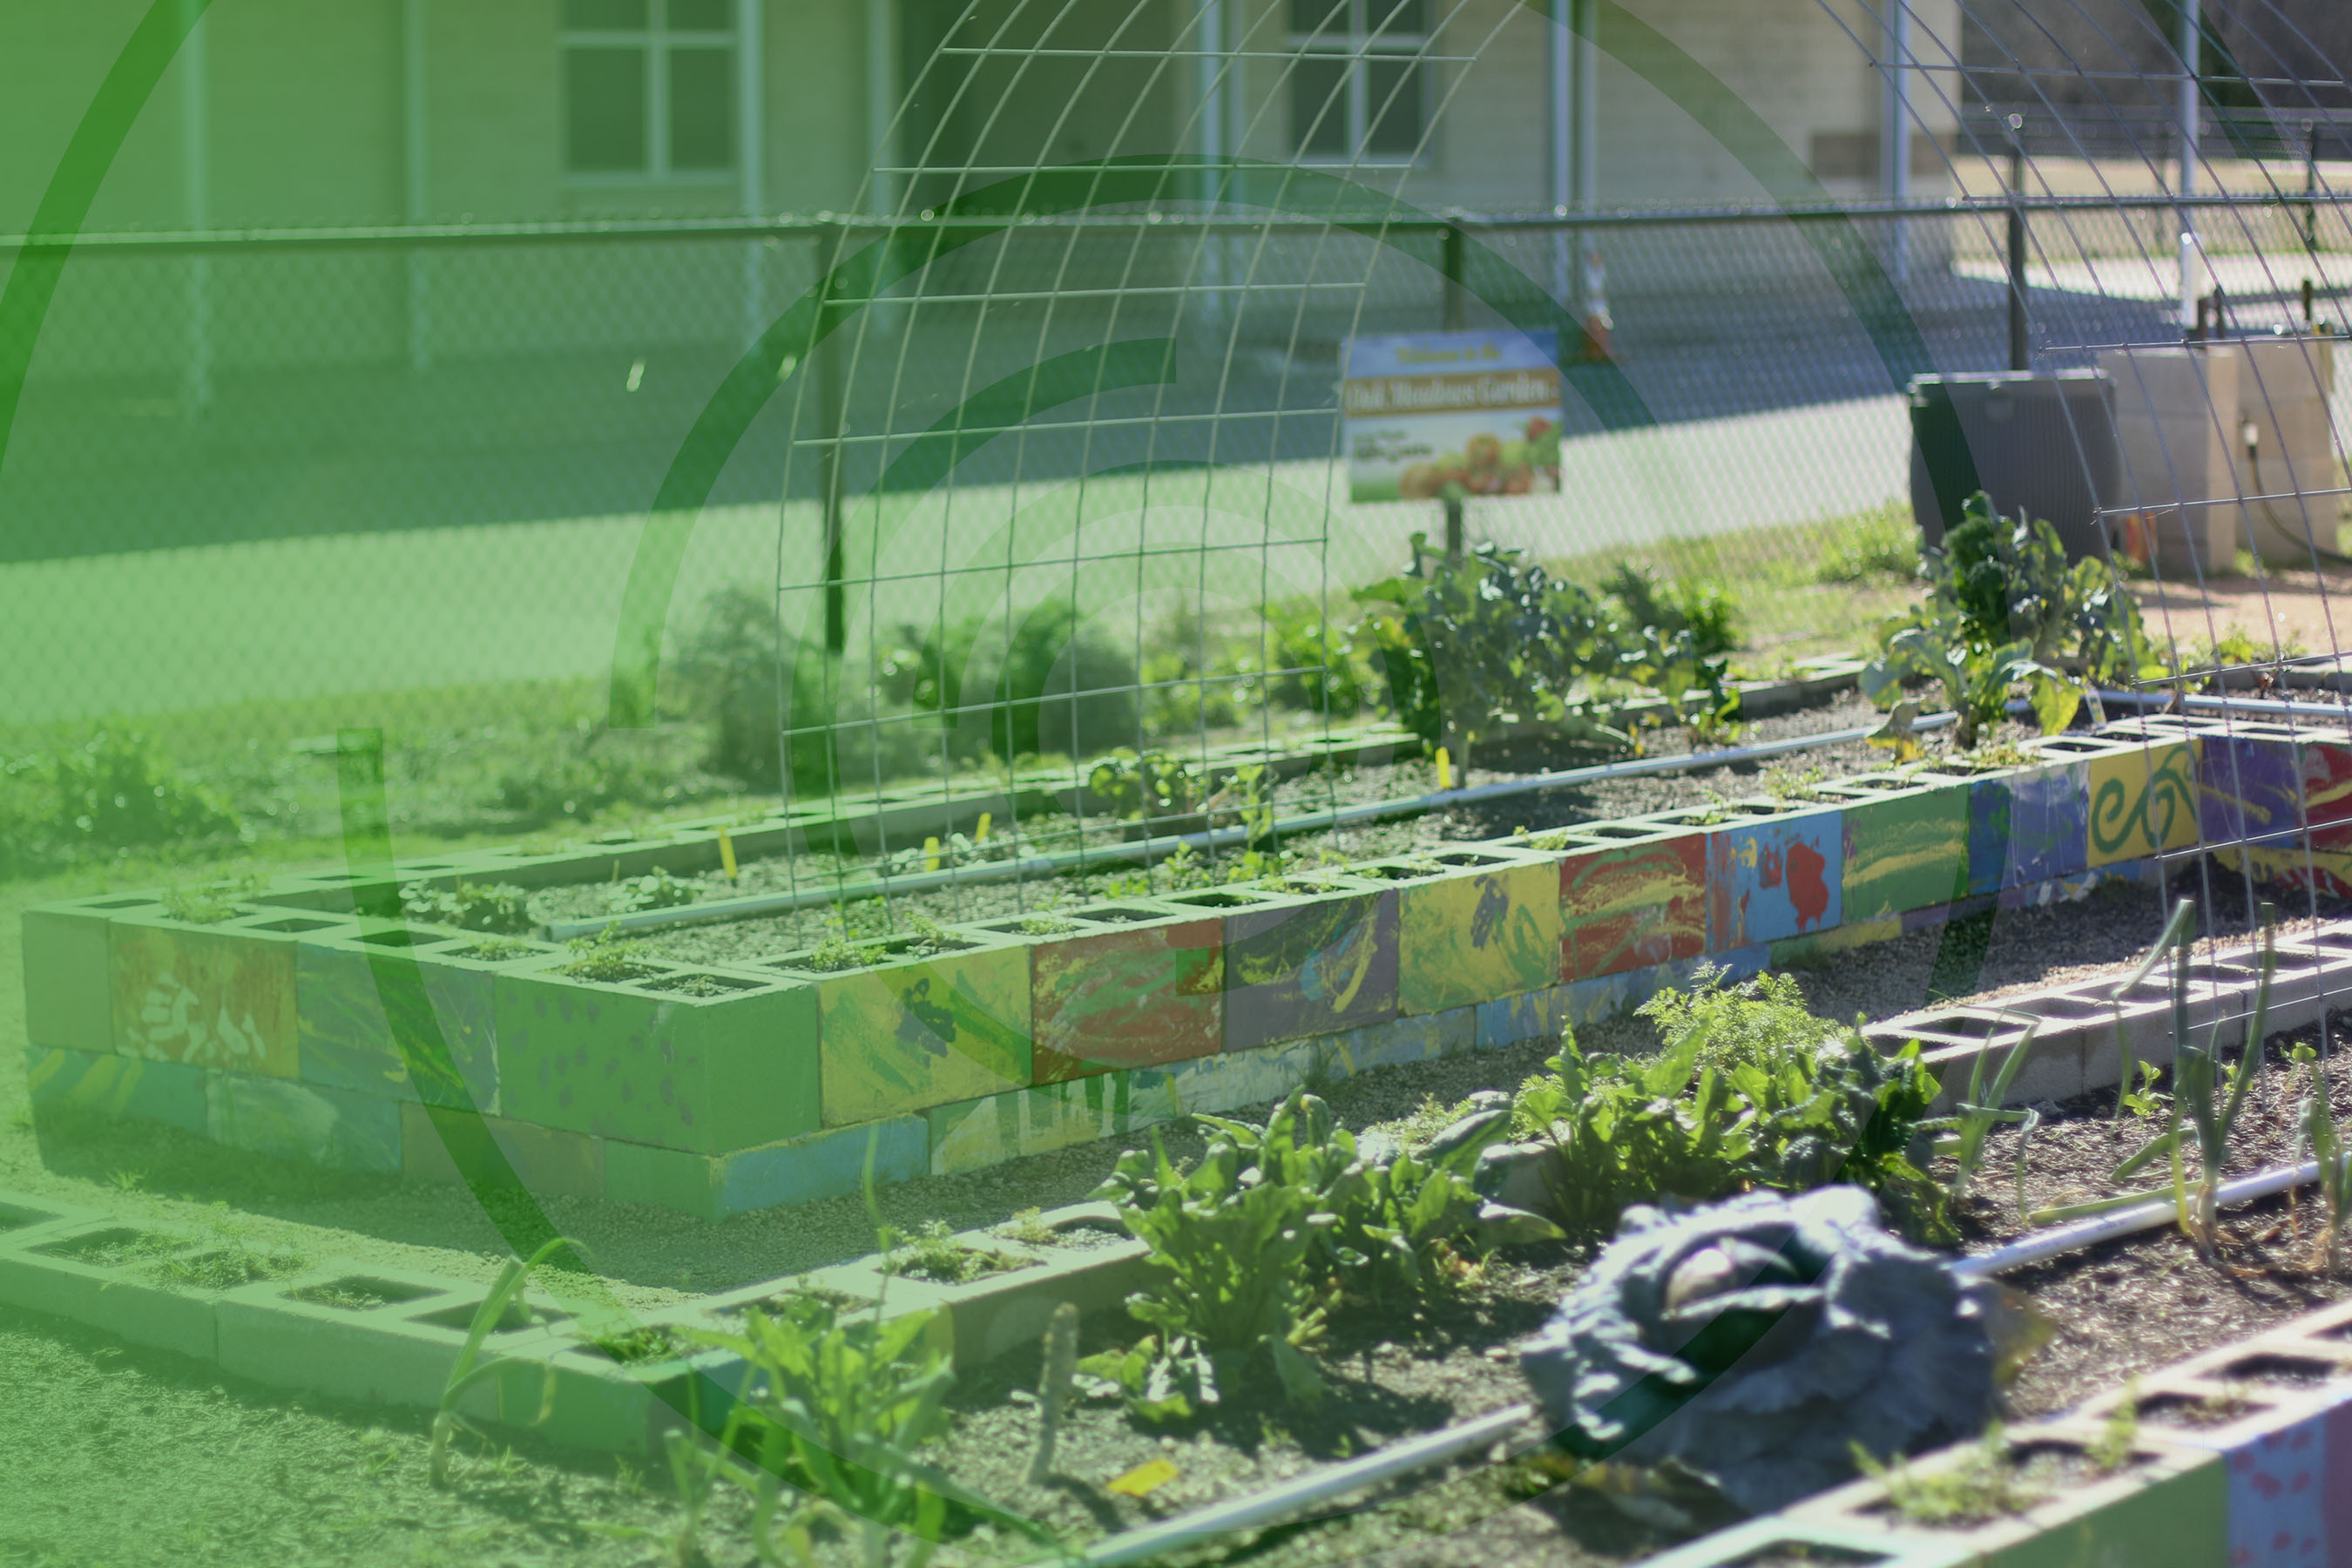 A school garden from the TX Sprouts program